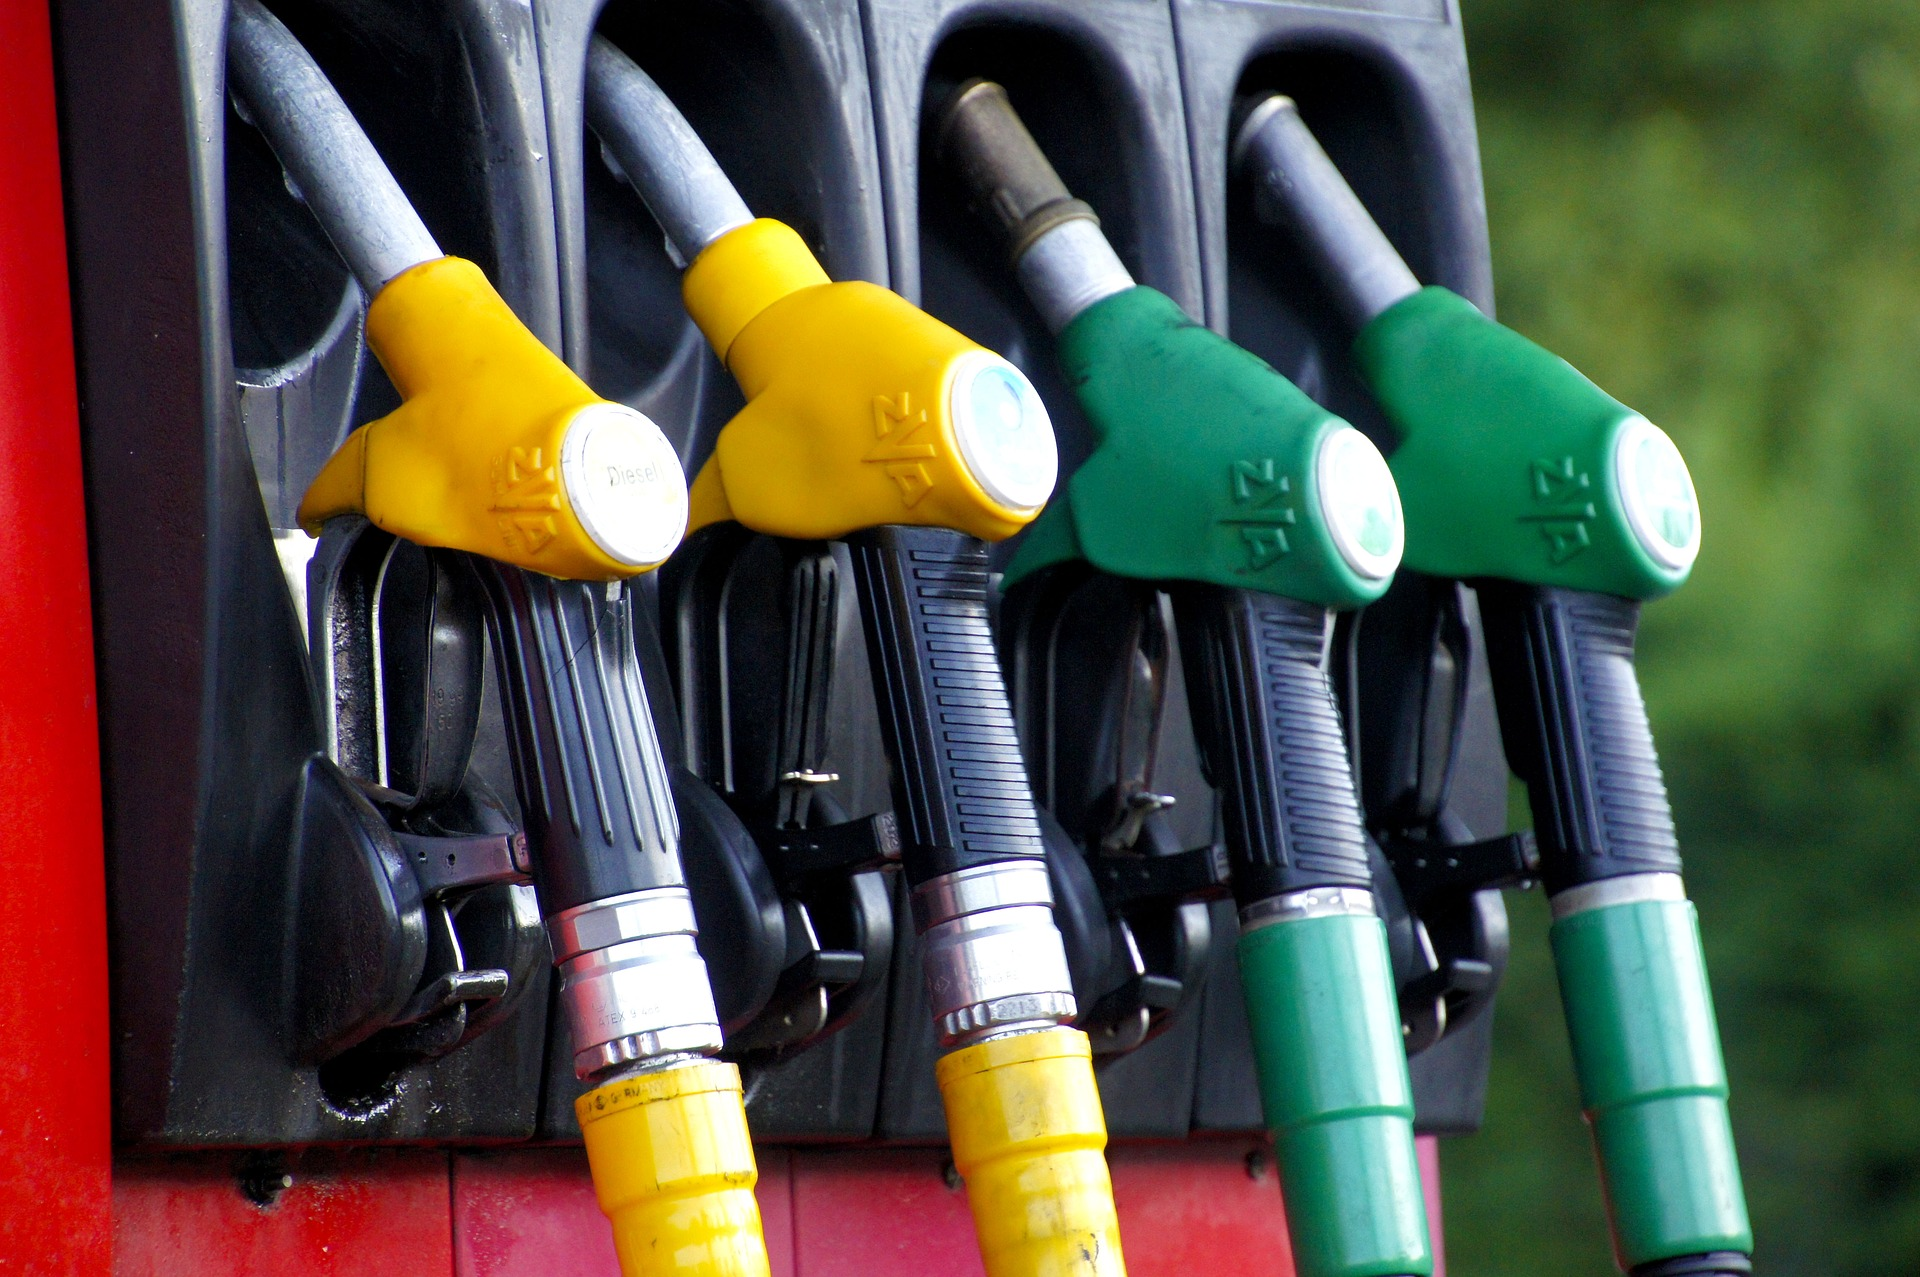 Watered down fuel – what exactly does it mean and what damage can it cause?